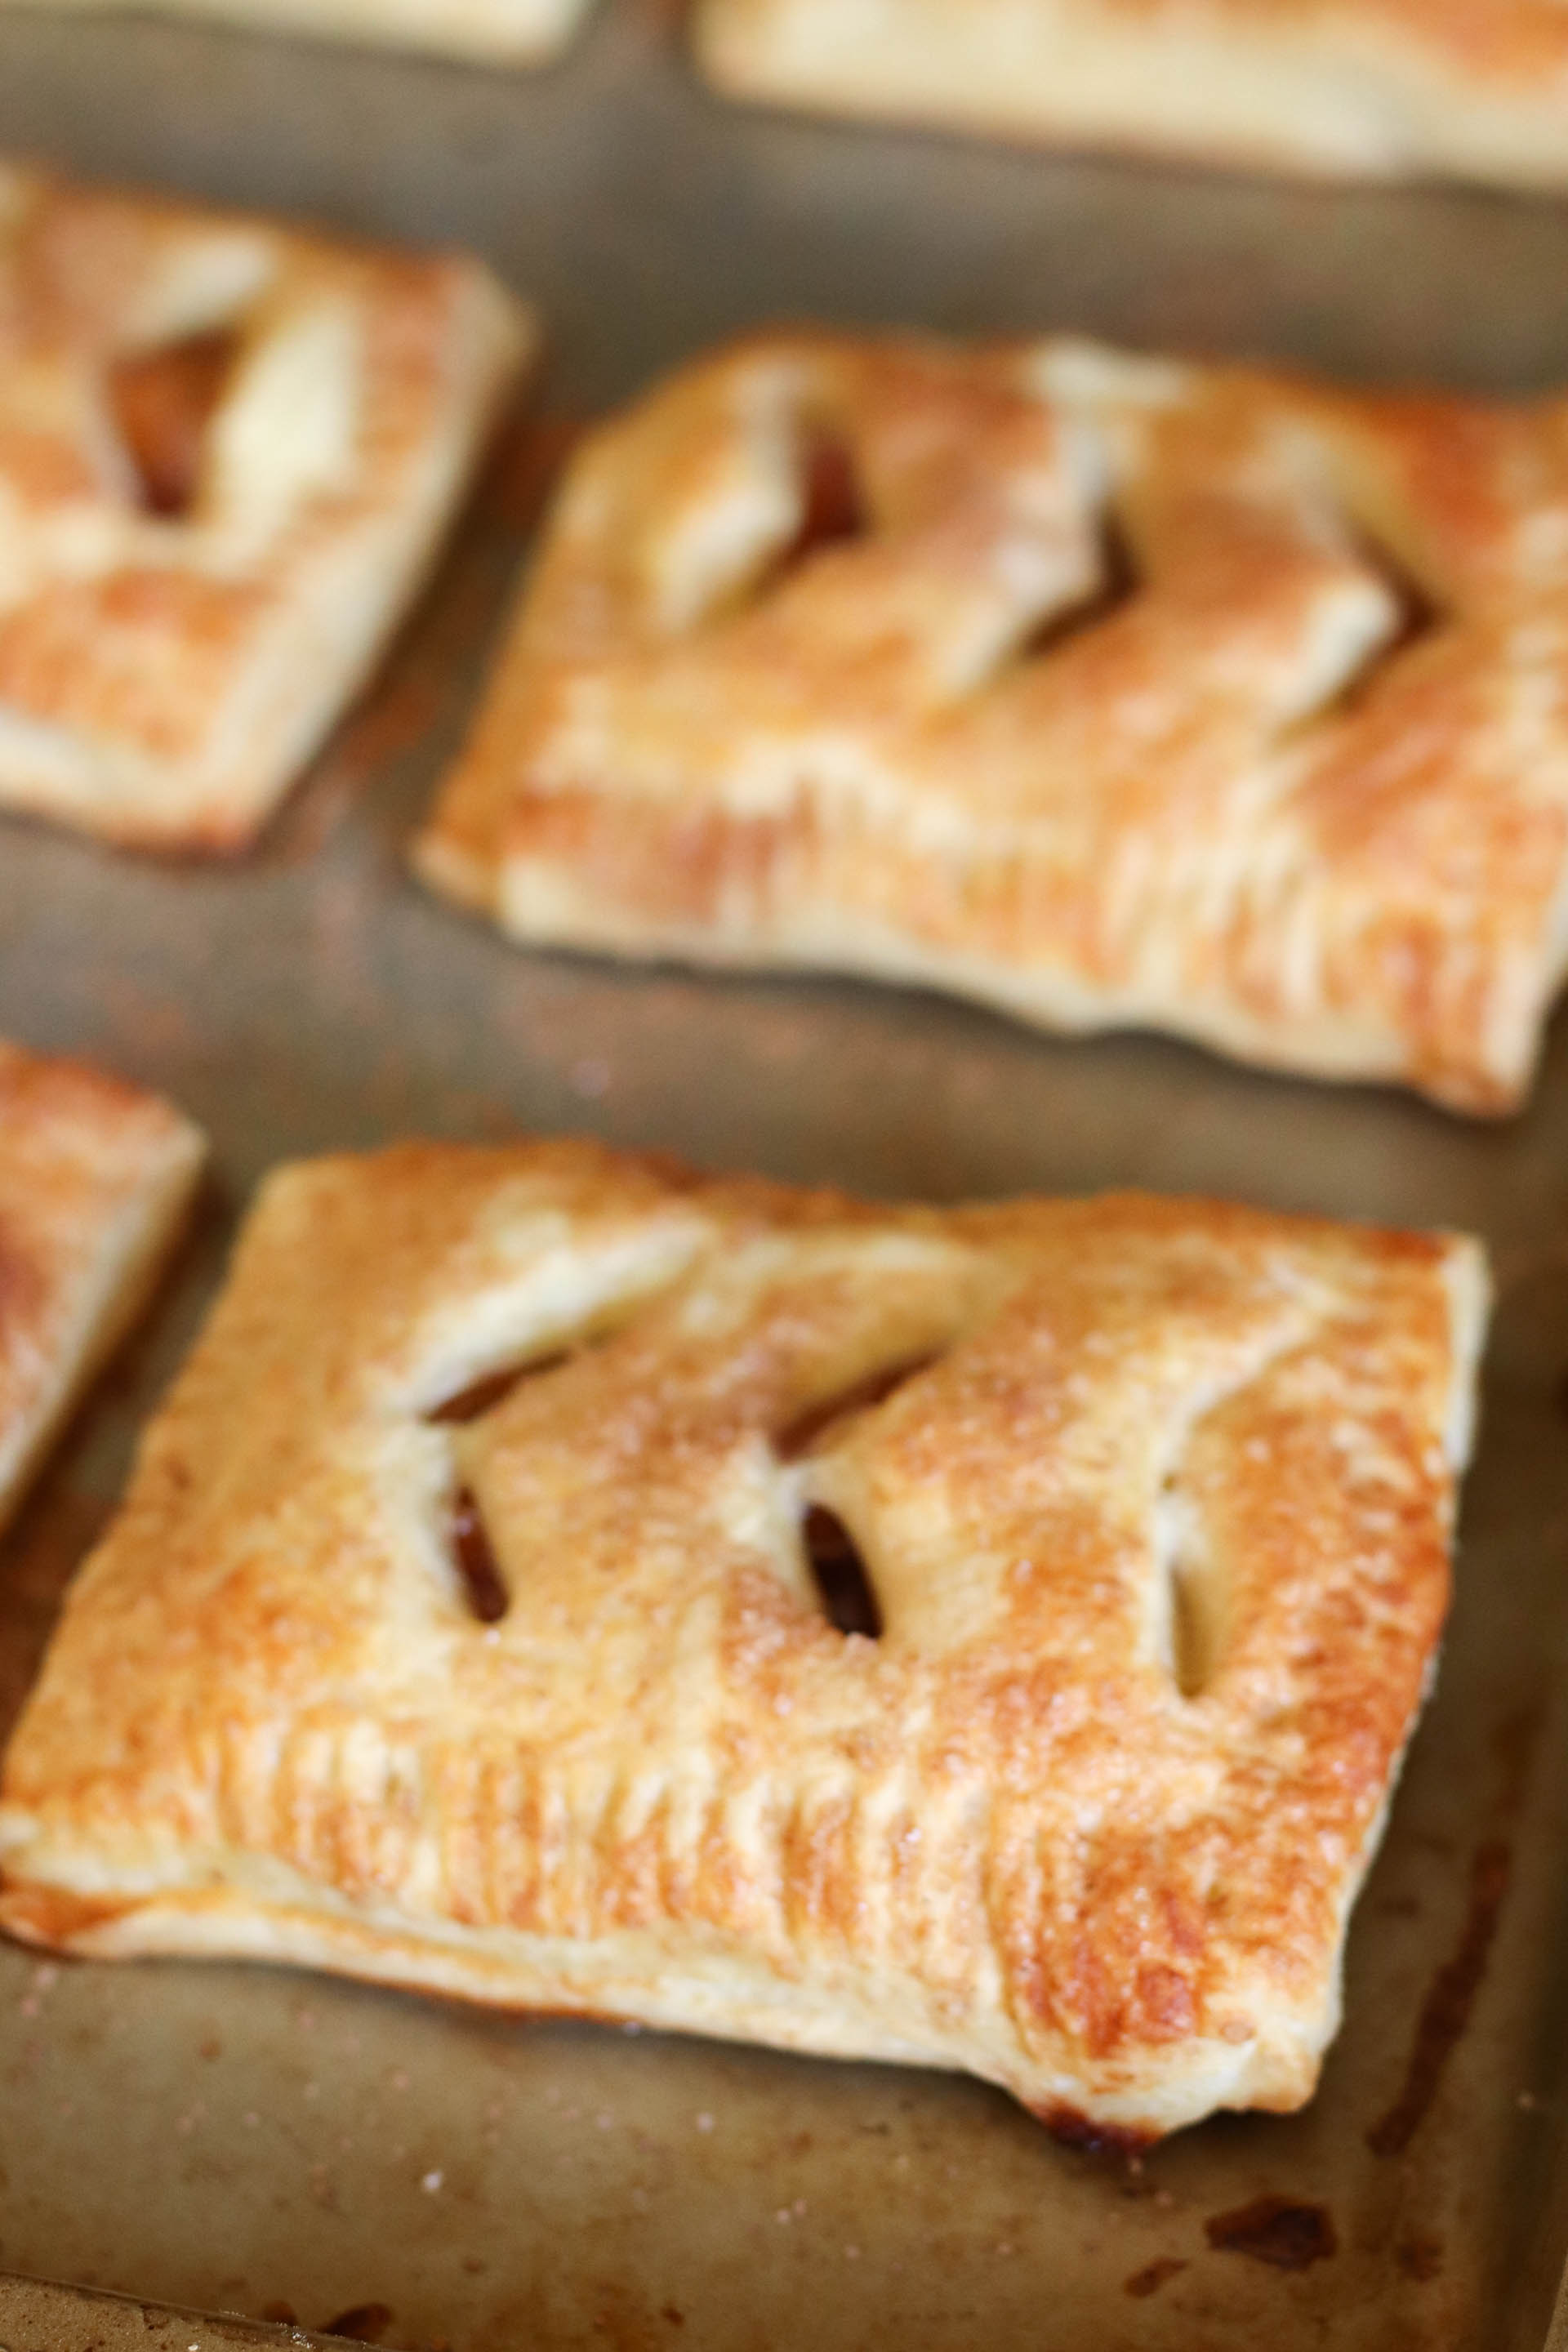 Baked Peach Hand Pies on baking sheet